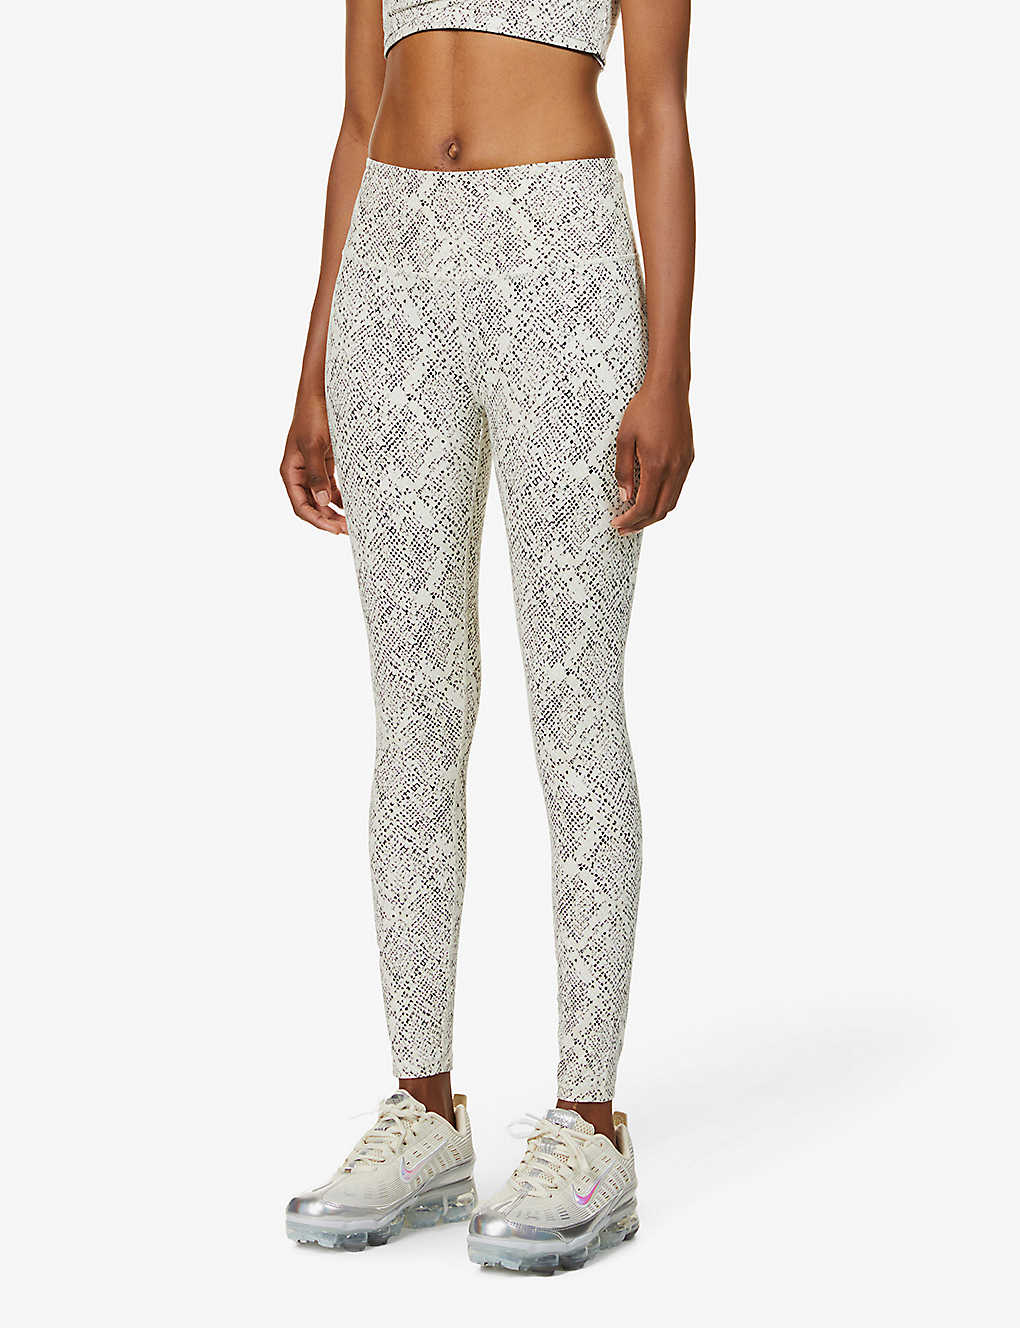 VARLEY: Century snakeskin-print high-rise stretch-woven leggings